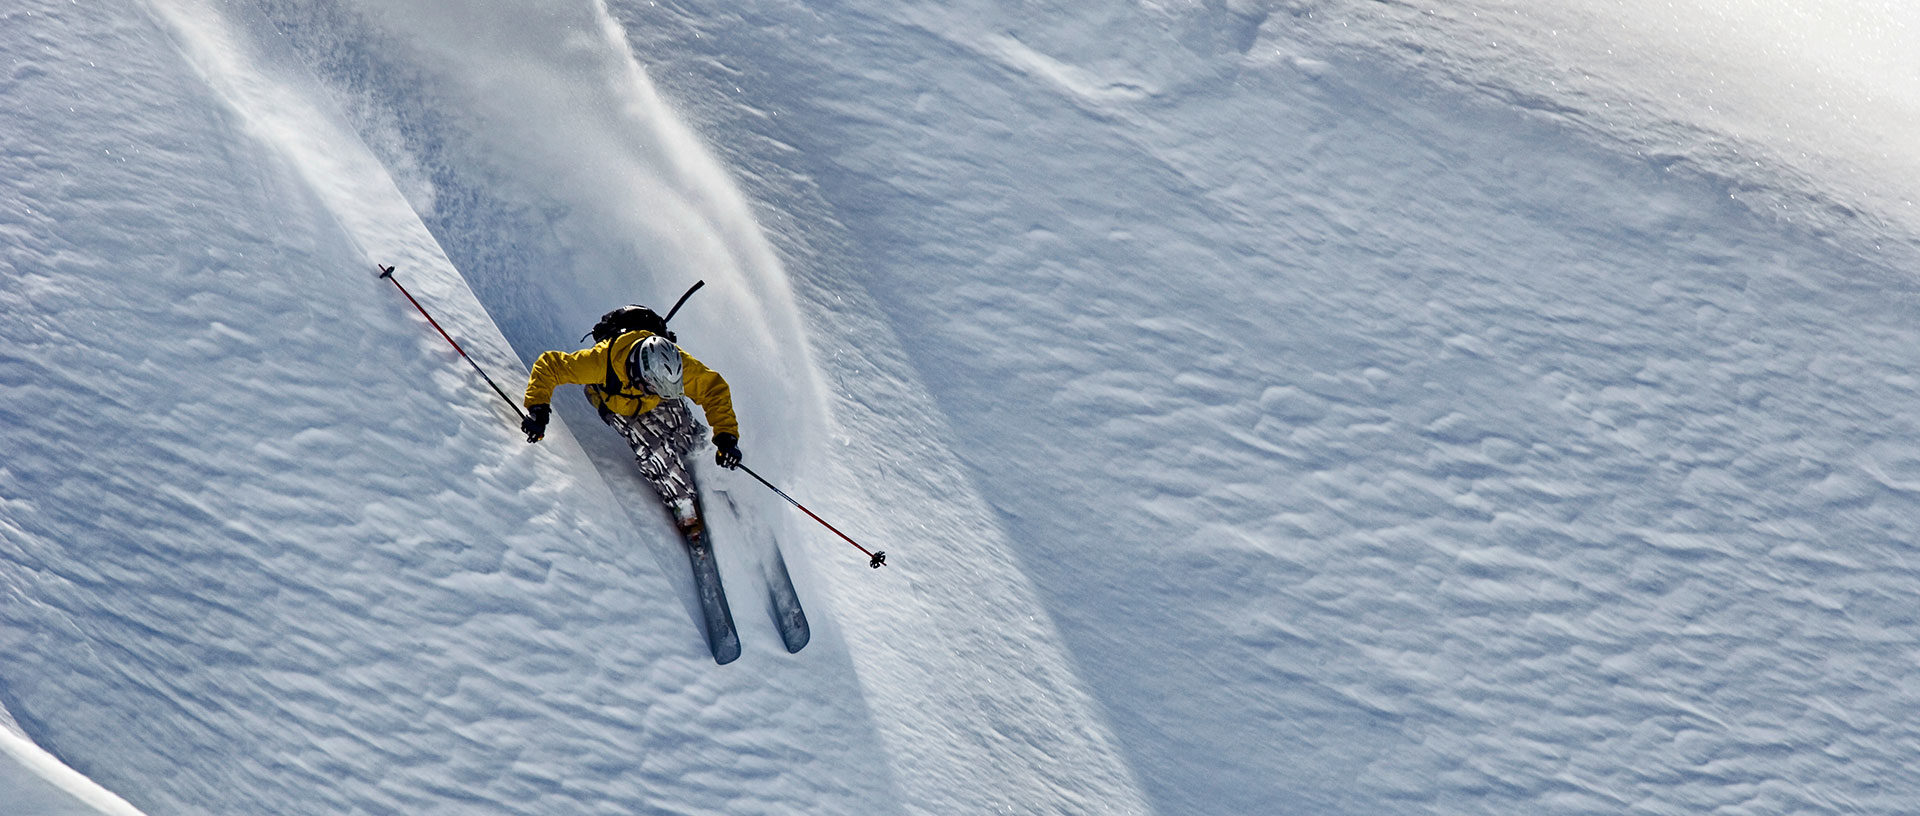 a skier in a yellow jacket makes the first run in fresh powder